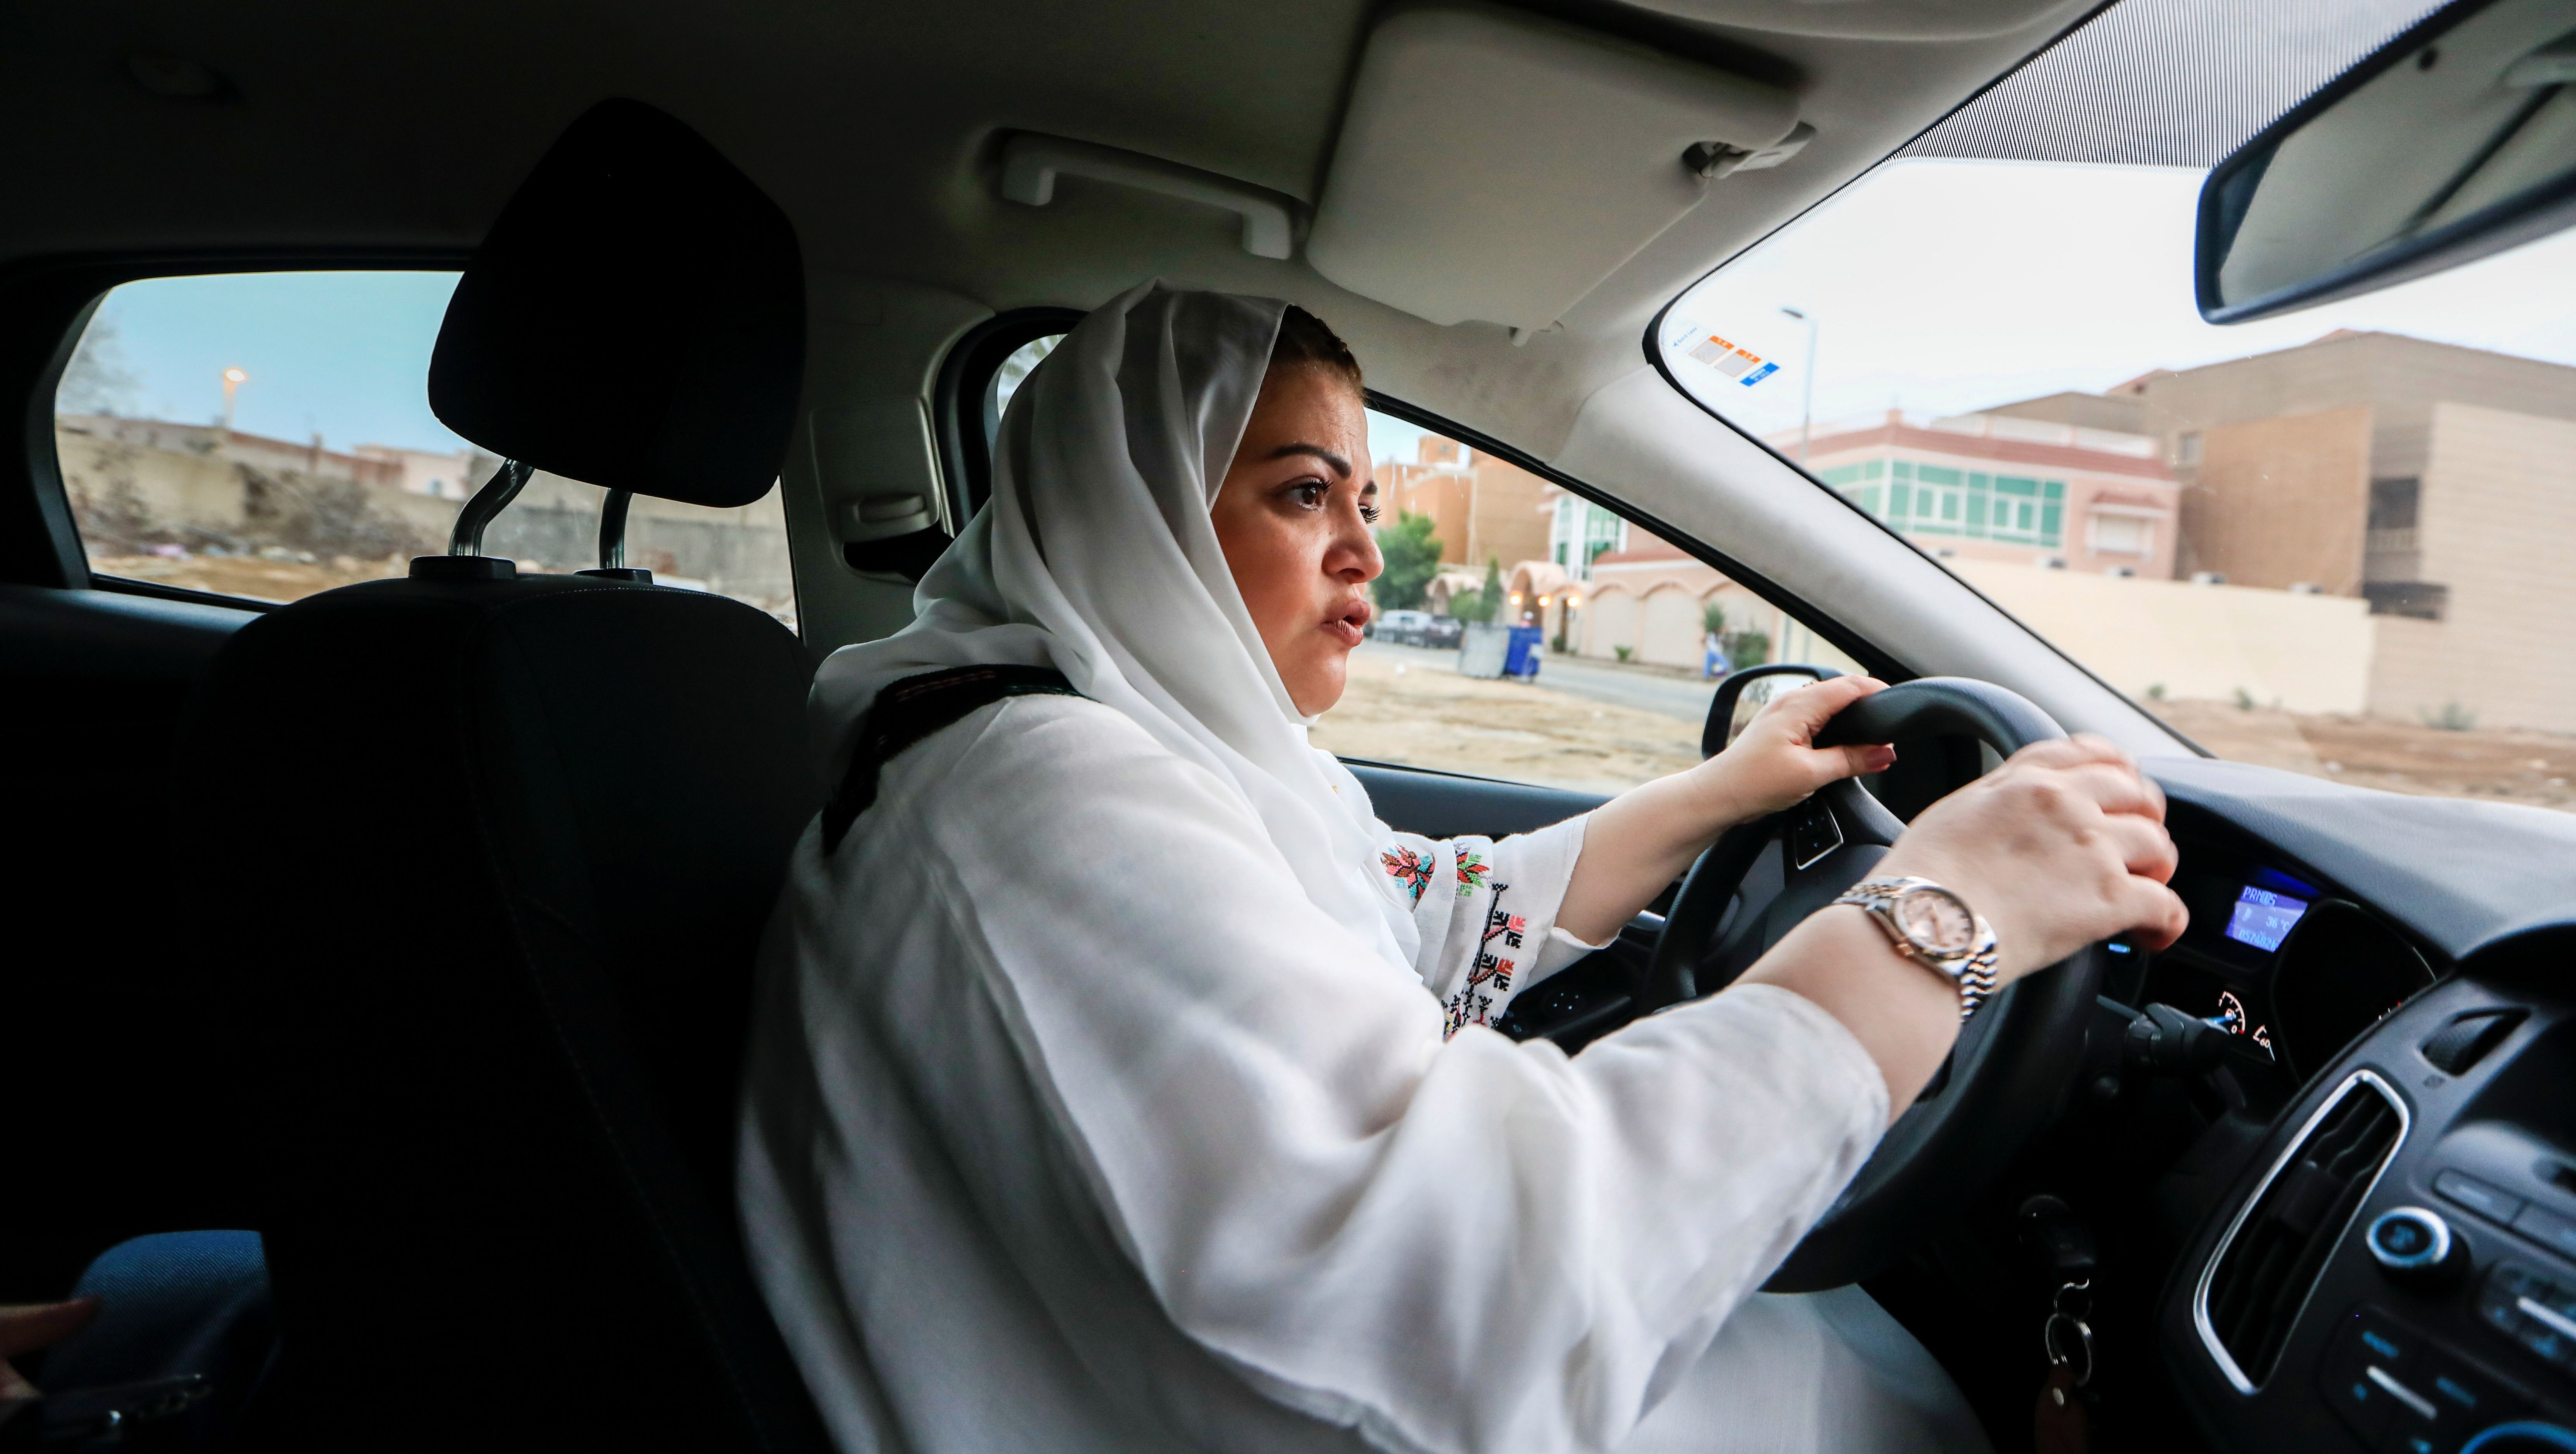 Dr Car: Saudi Arabia's Women Are Finally Allowed To Drive A Car On